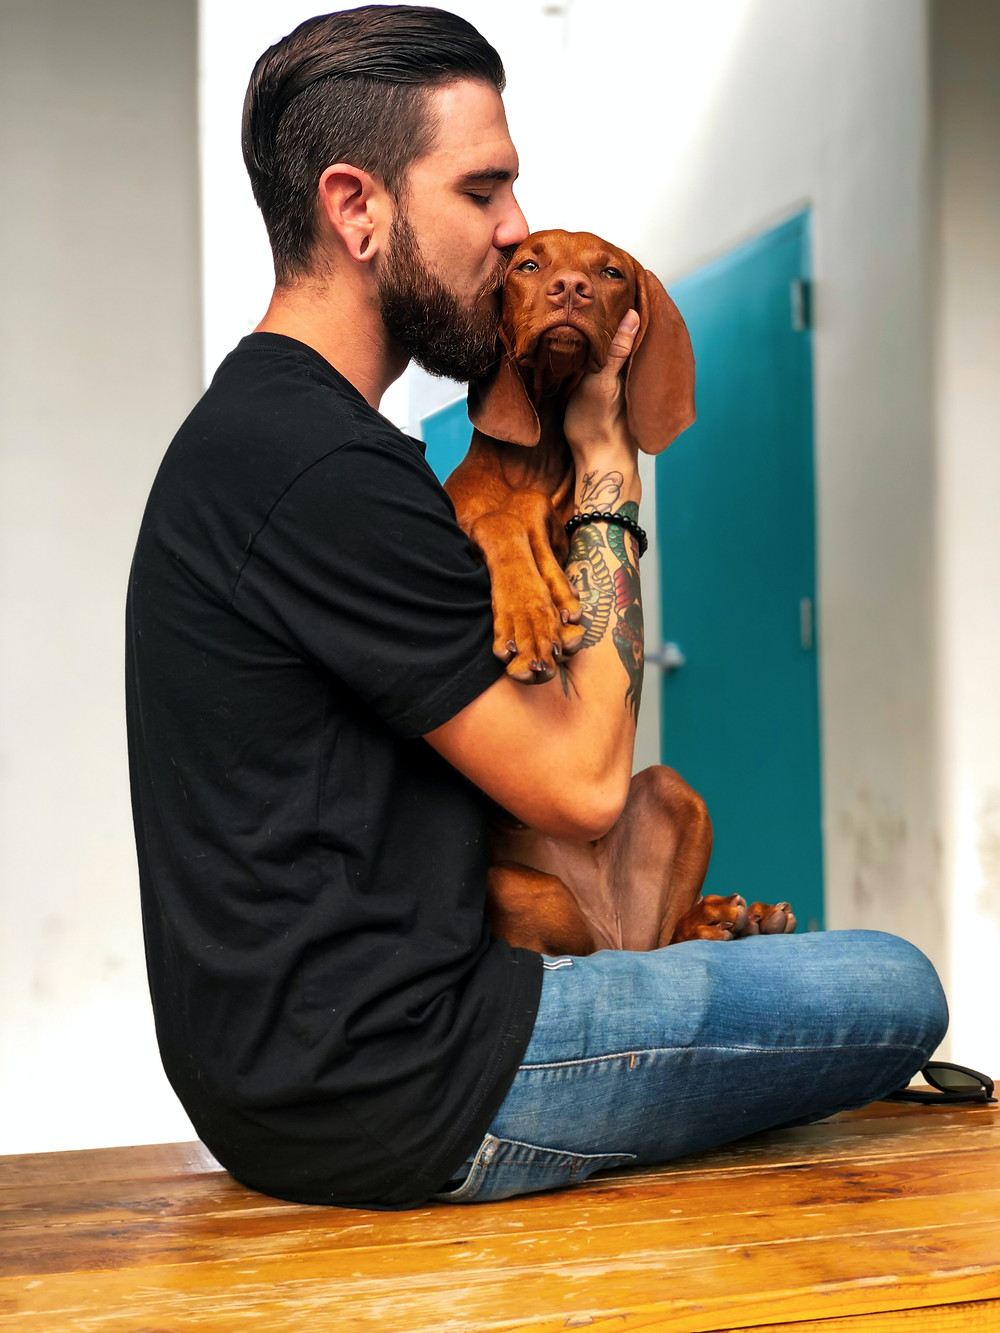 A man in a black t-shirt and jeans embraces his brown hound dog.